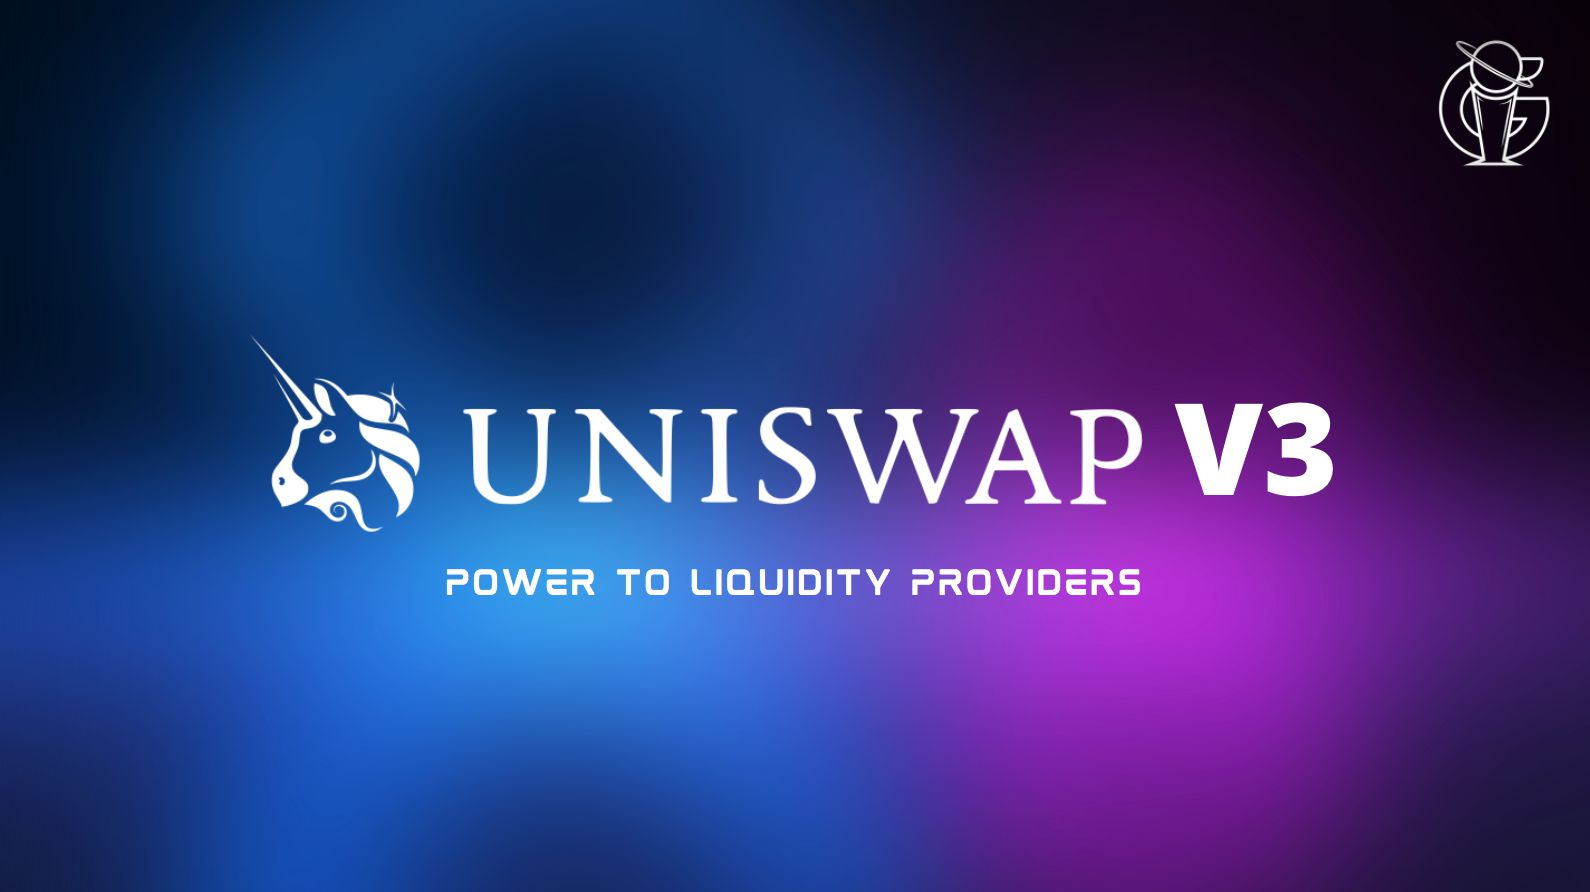 Uniswap v3 is now live!